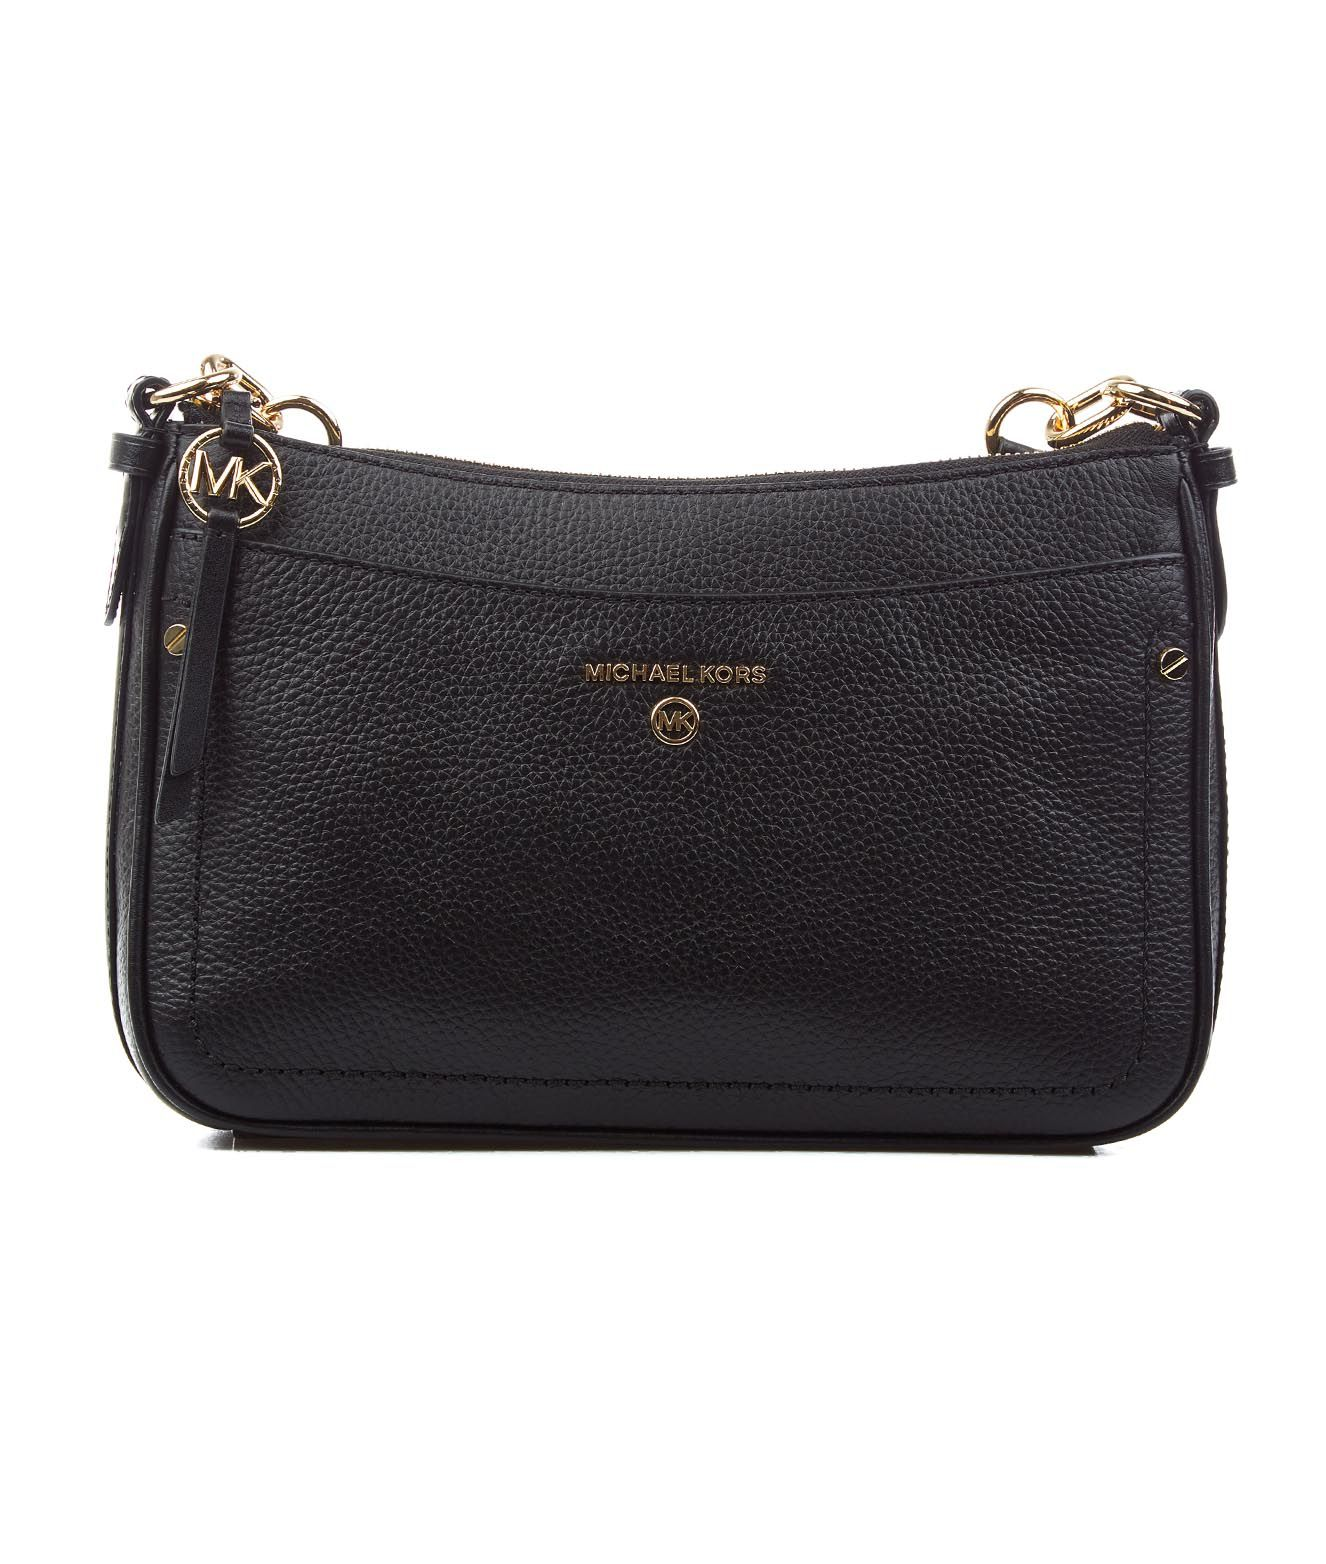 "Michael Kors SHOULDER BAG ""JET SET"""